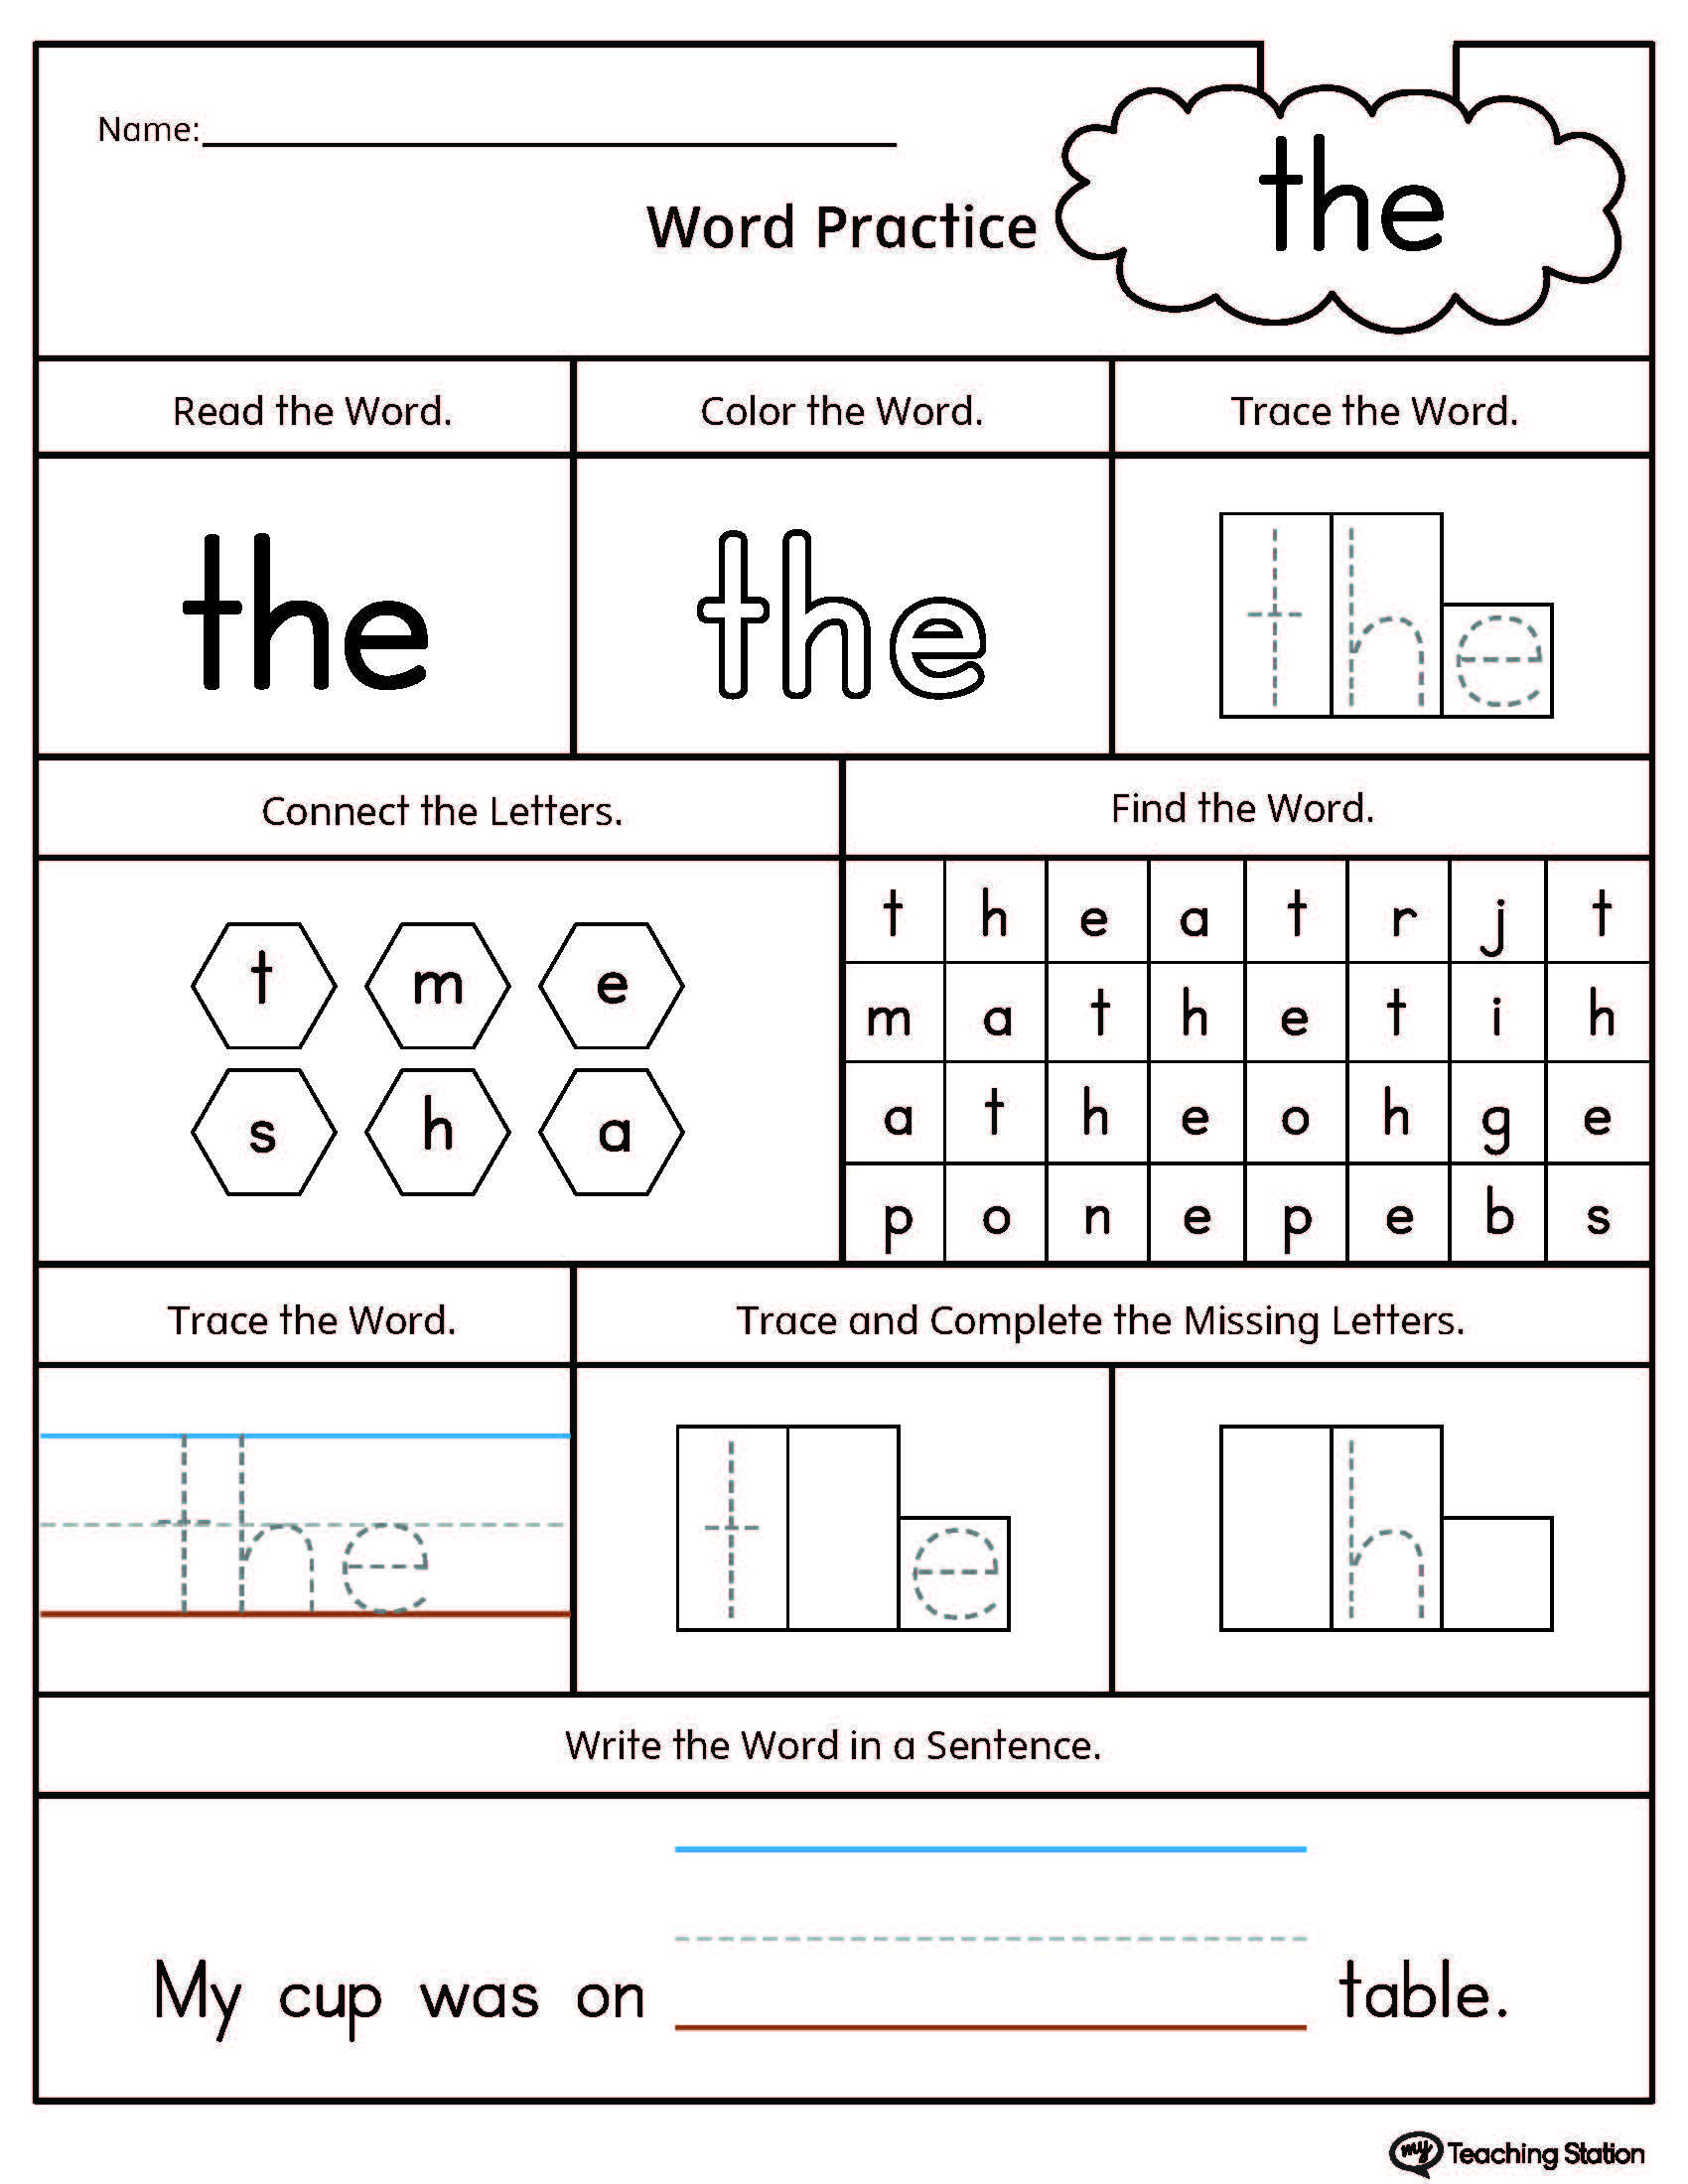 High Frequency Word Yes Printable Worksheet